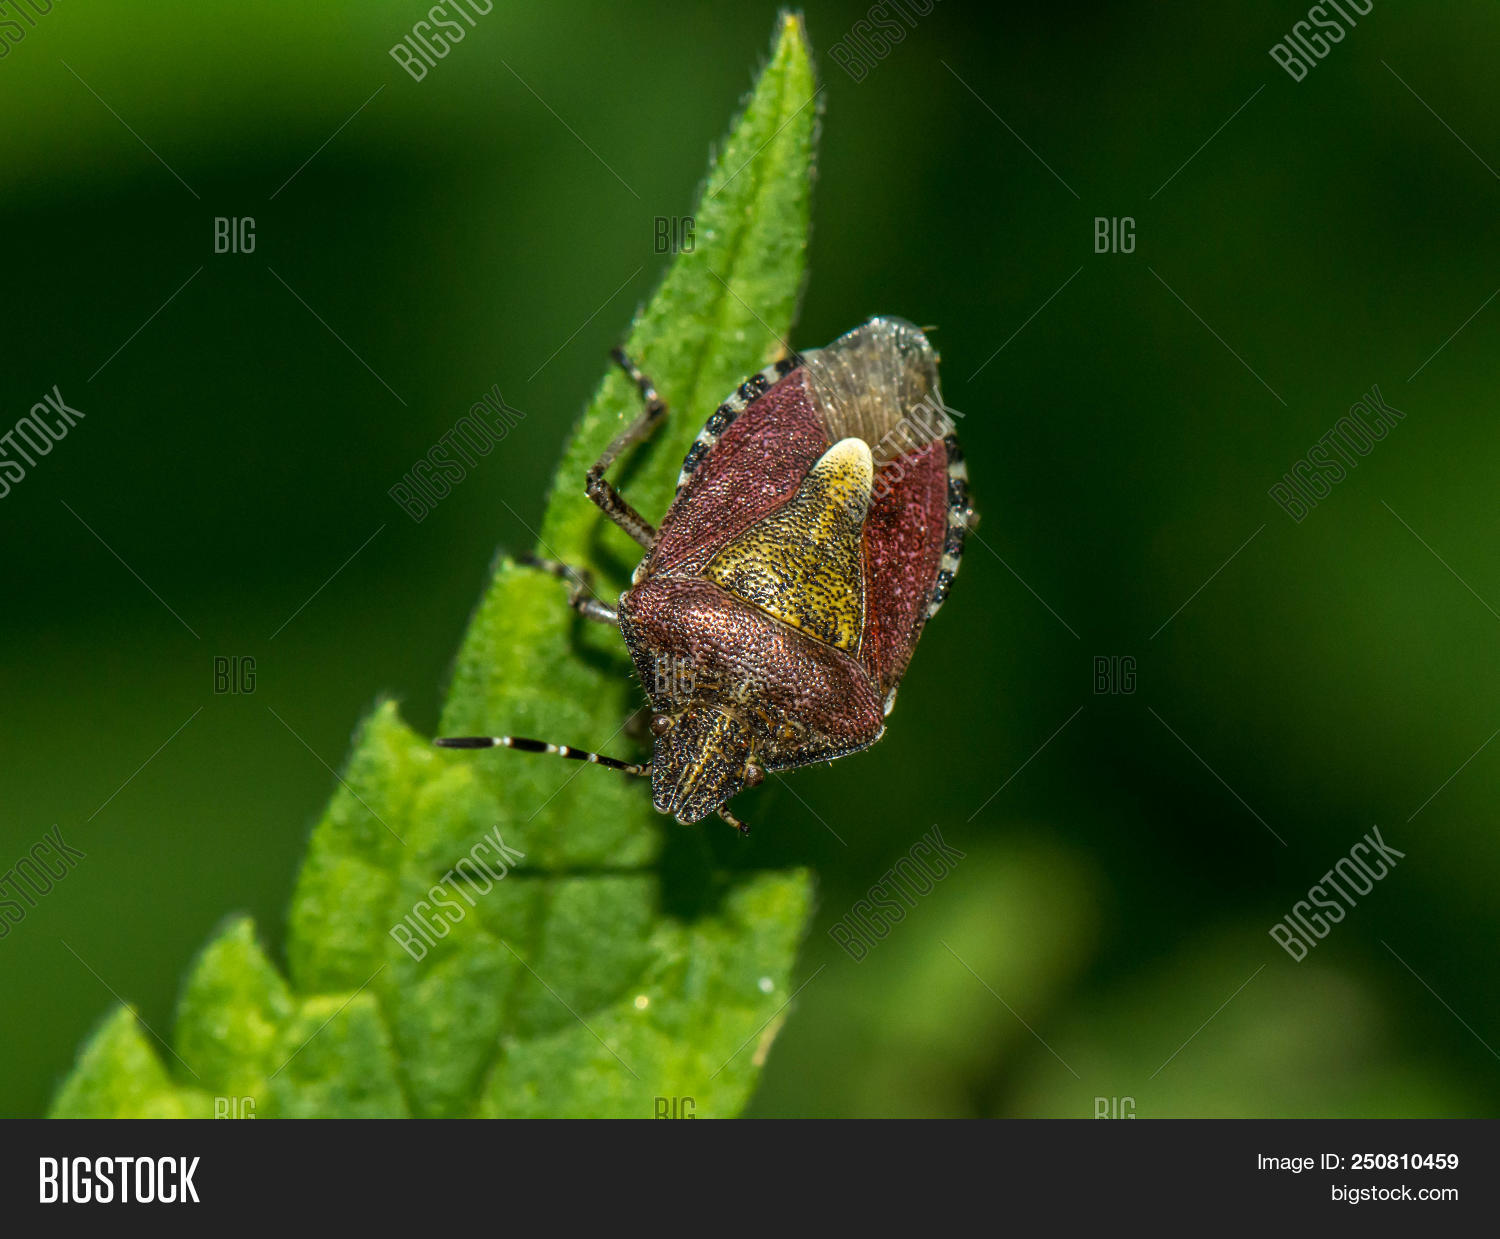 animal,autumn,background,beauty,berry,bright,brown,bug,caucasus,close-up,colorful,crimson,exciting,flat,flower,fragrant,fruit,furry,garden,gorgeous,green,hairy,incredible,inhabitant,joy,leaf,lengthened,macro,mysterious,nature,nice,ornament,pattern,rare,raspberries,red,scary,scratchy,secretive,smelled,smelly,spotted,spring,striped,suck,summer,tendrils,texture,vegetable,wood